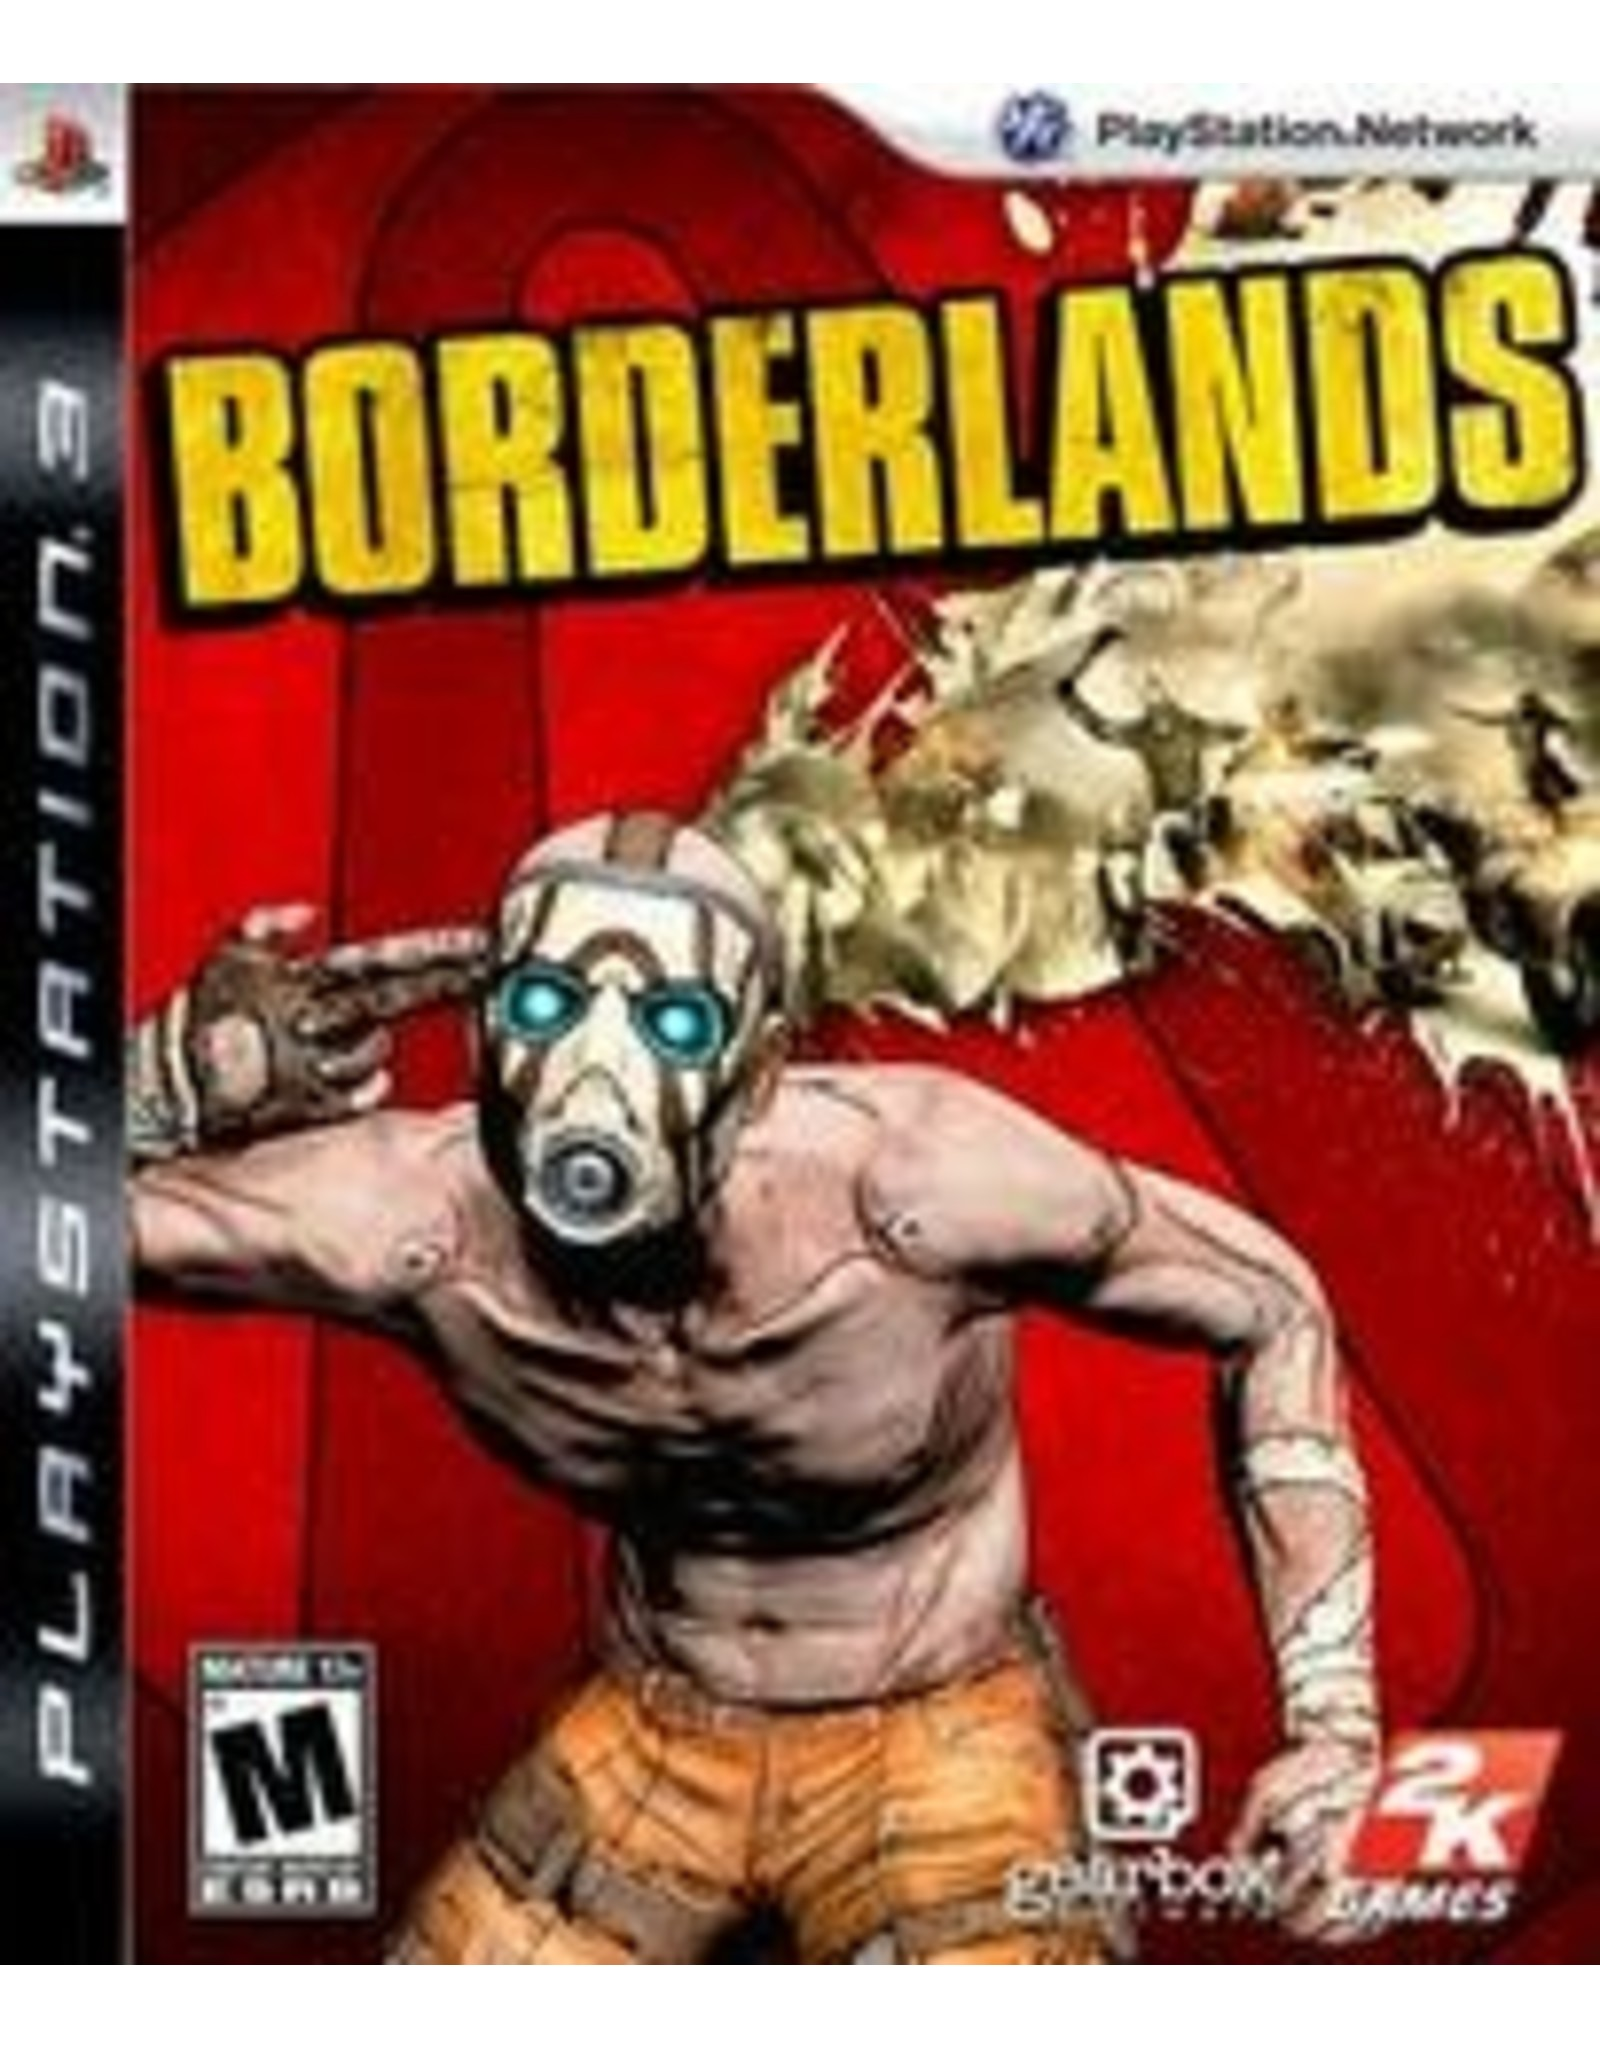 Playstation 3 Borderlands (CIB)